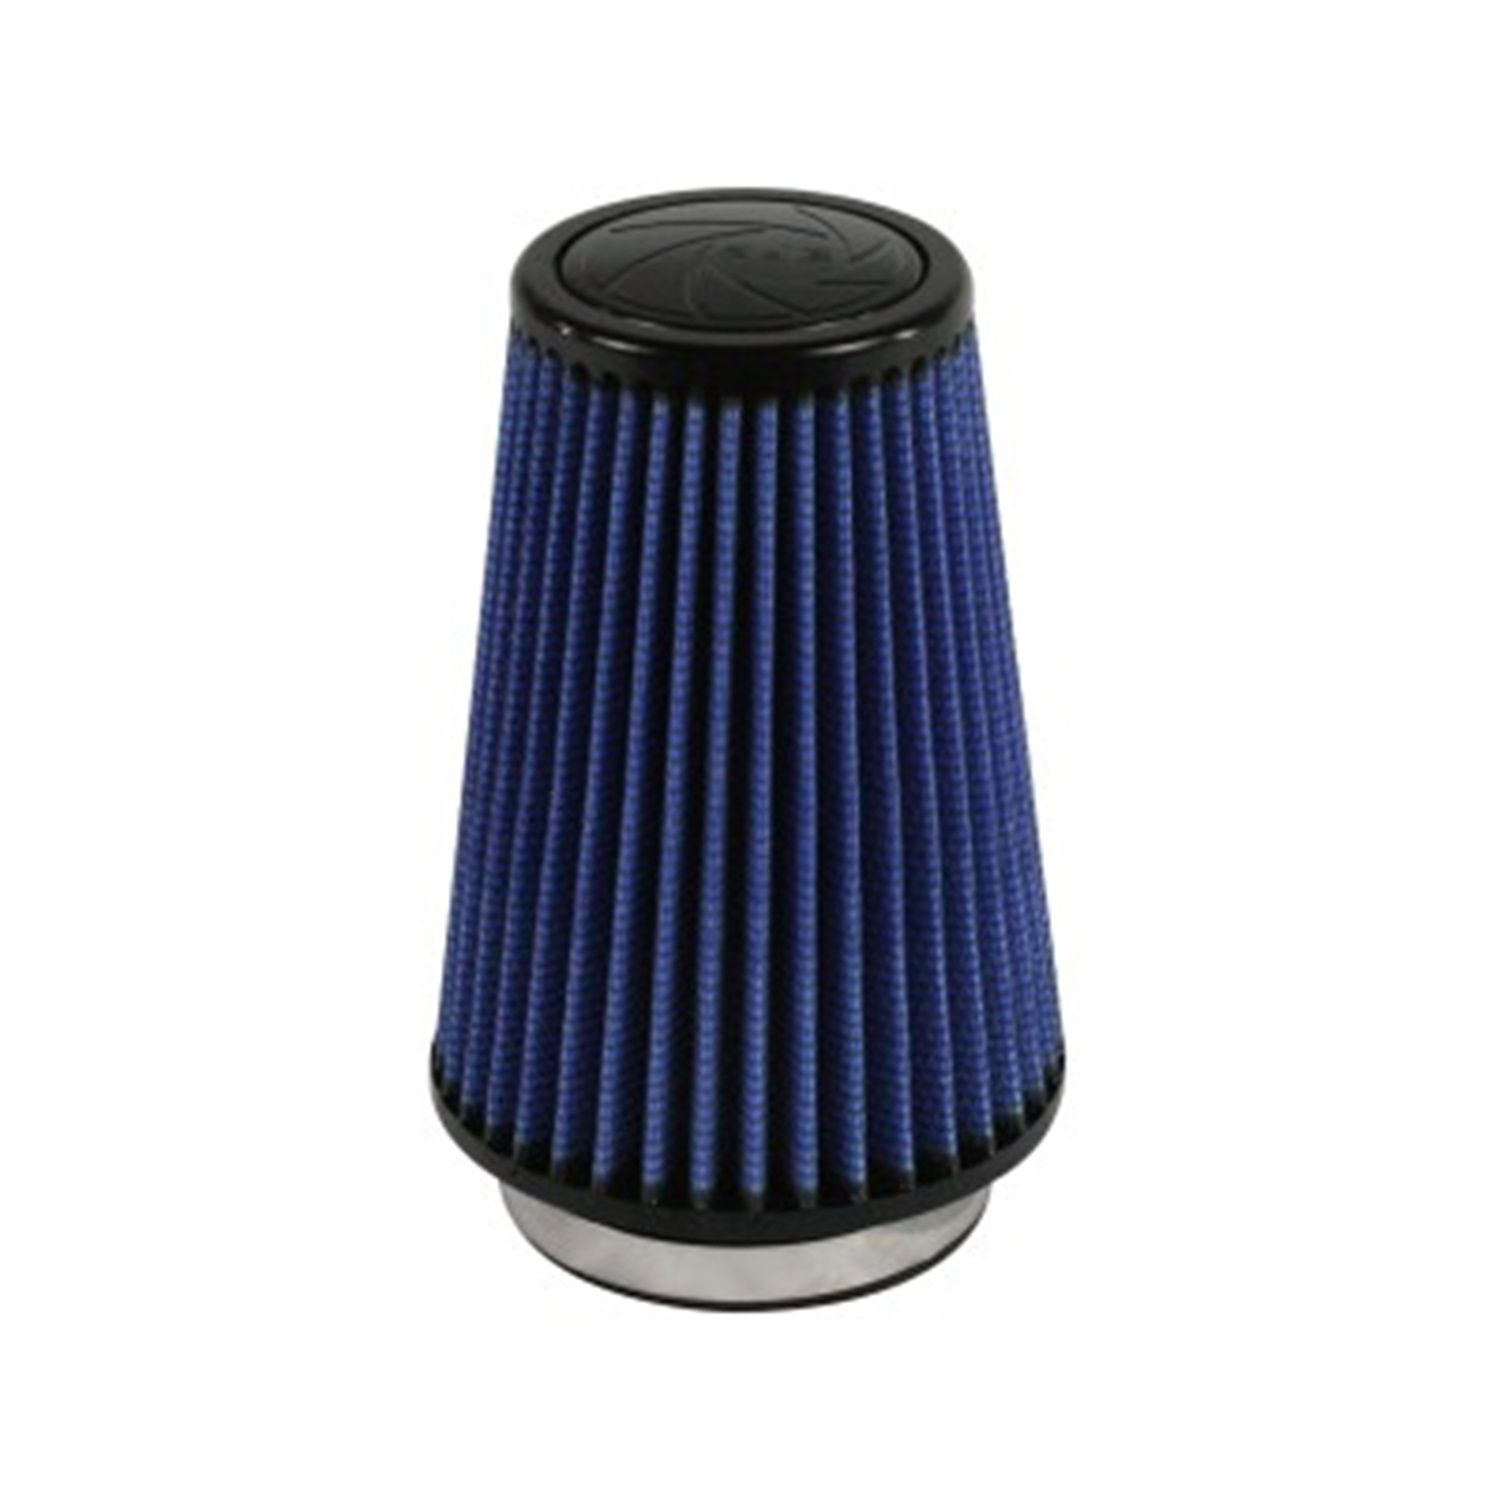 aFe Power 24-90069 MagnumFLOW Intake PRO 5R Air Filter 24-90069